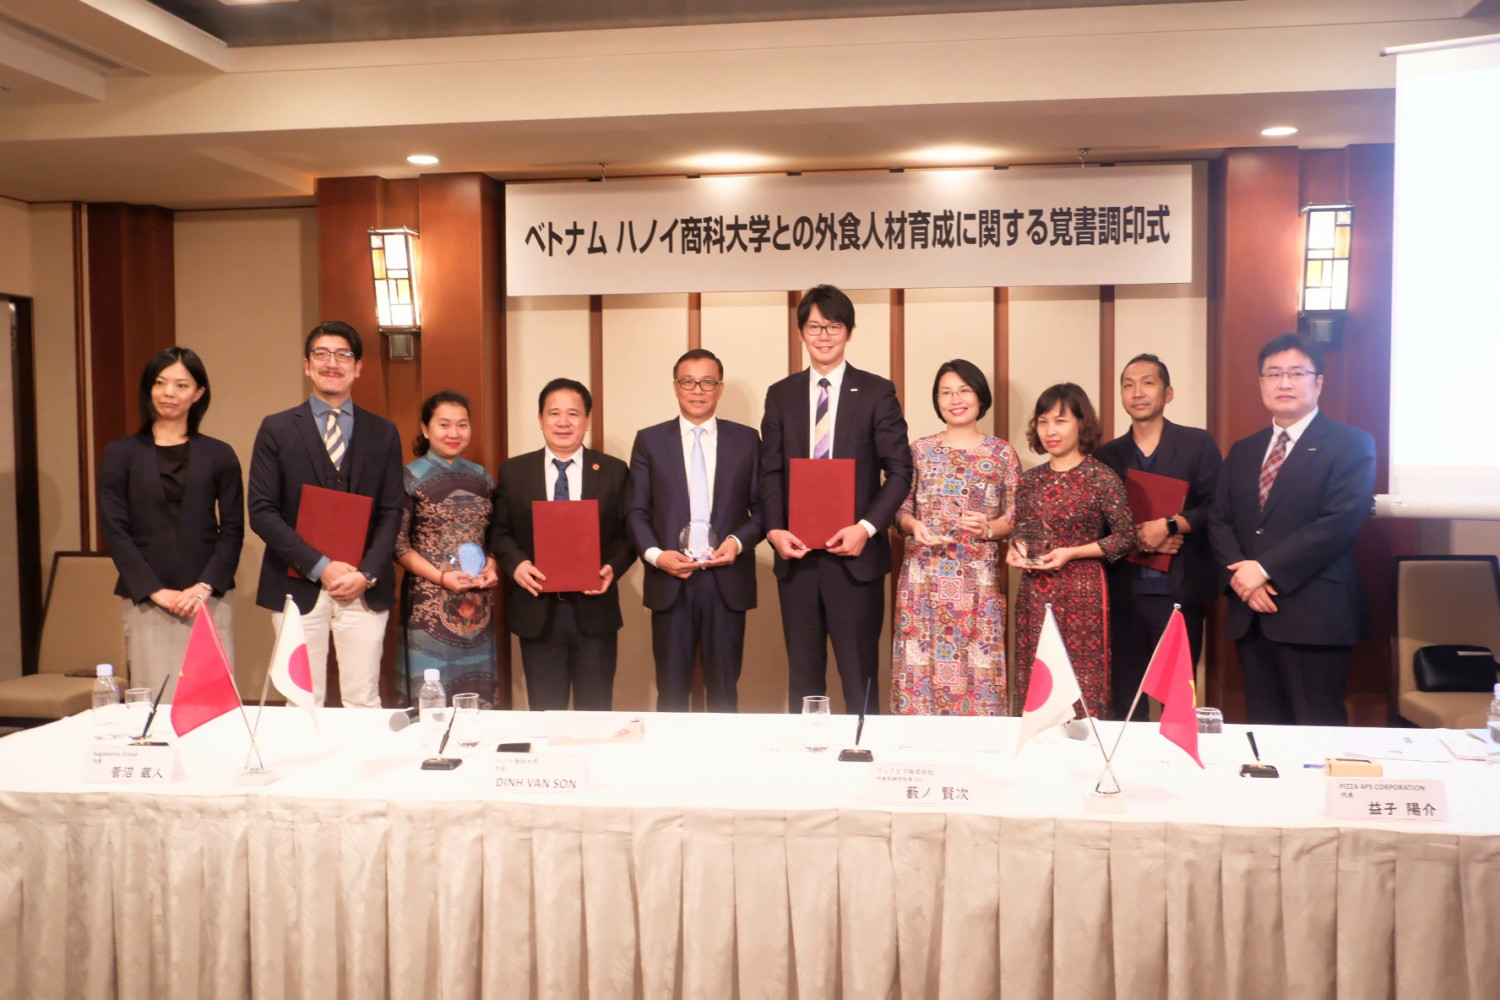 THUONGMAI UNIVERSITY INKS DEAL WITH JAPANESE COUNTERPARTS FOR SENDING STUDENTS OF HOSPITALITY AND TOURISM FACULTY TO JAPAN FOR INTERNSHIPS